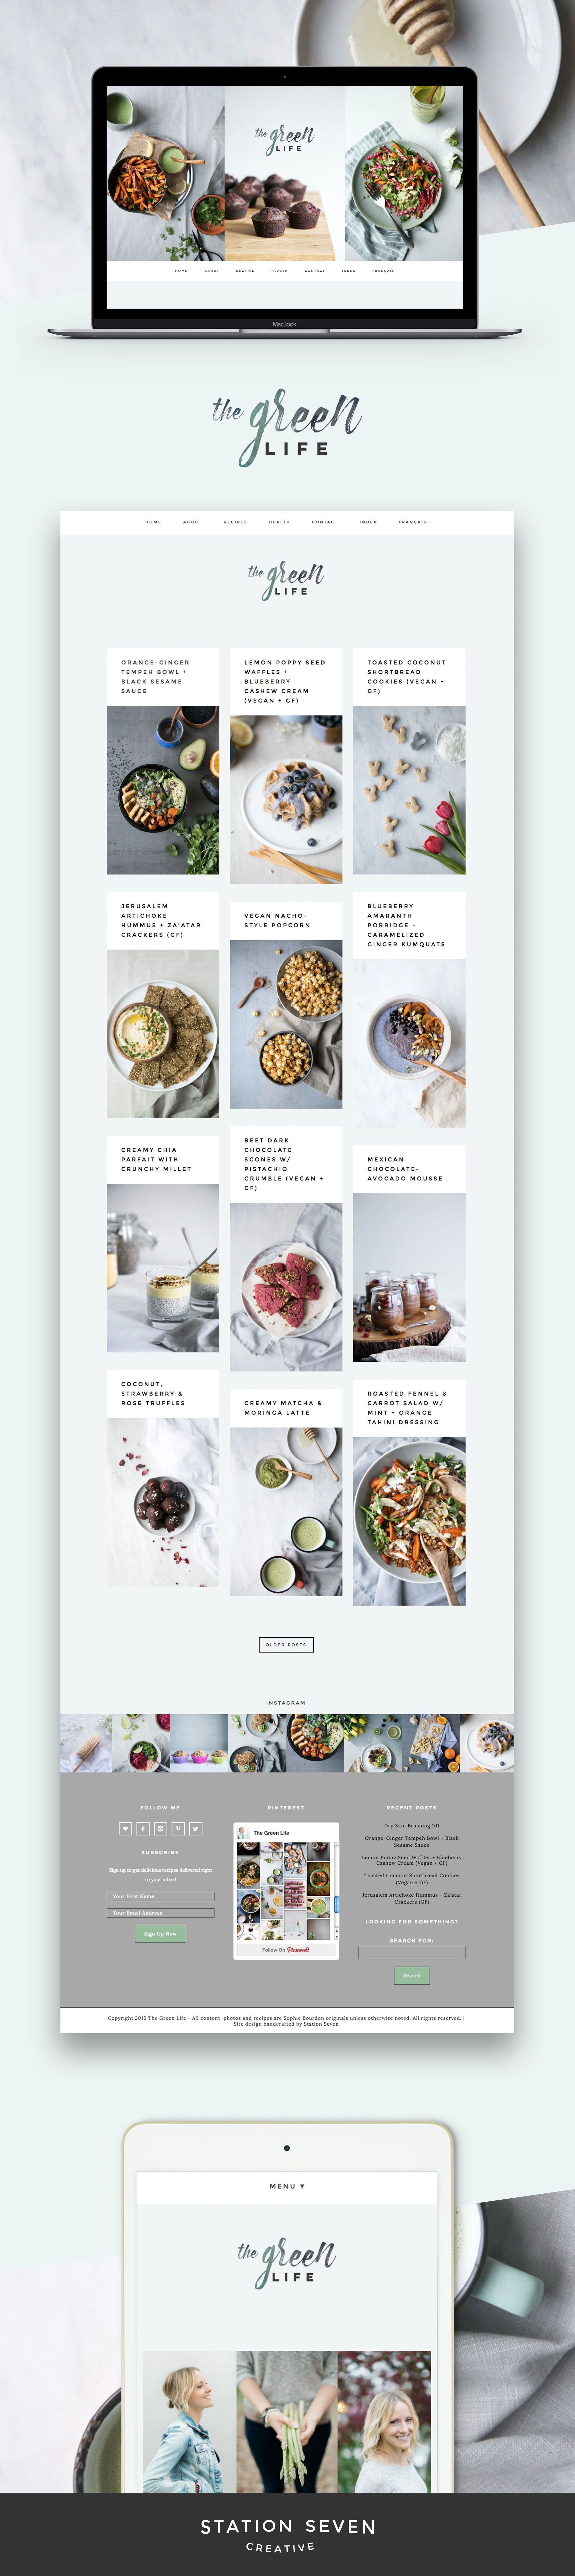 Clean and beautiful food blog by the green life running on station clean and beautiful food blog by the green life running on station sevens matchstick wordpress theme forumfinder Image collections